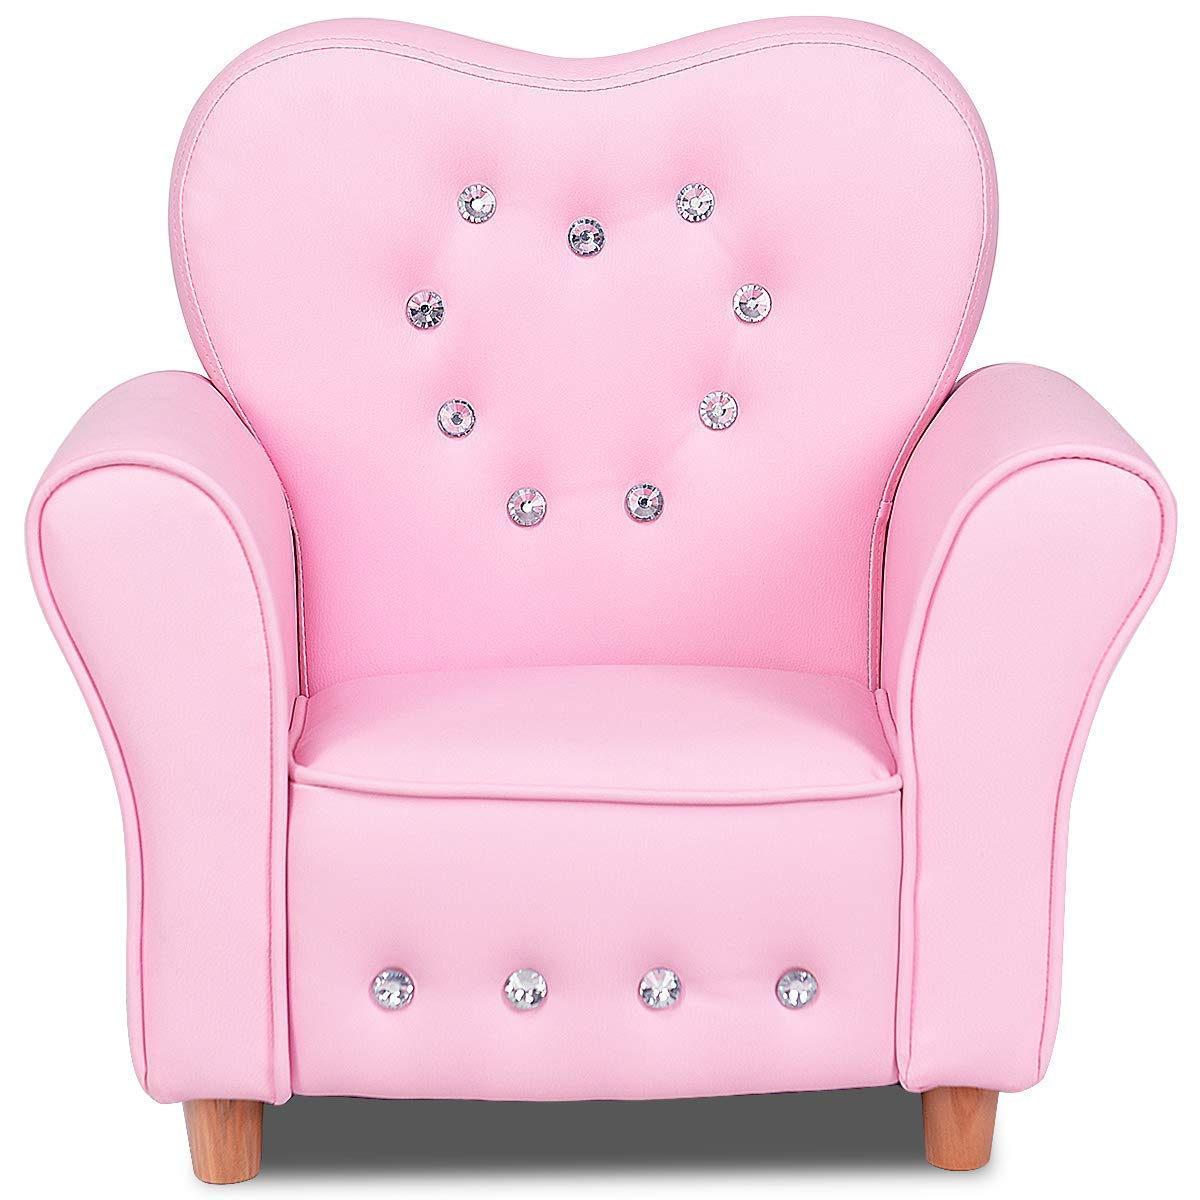 Costzon Kids Sofa, PU Leather Upholstered Armrest Chair, Sturdy Wood Construction, Crystal Embedded, Perfect for Preschool Girls, Pink (22-Inch Single Sofa) by Costzon